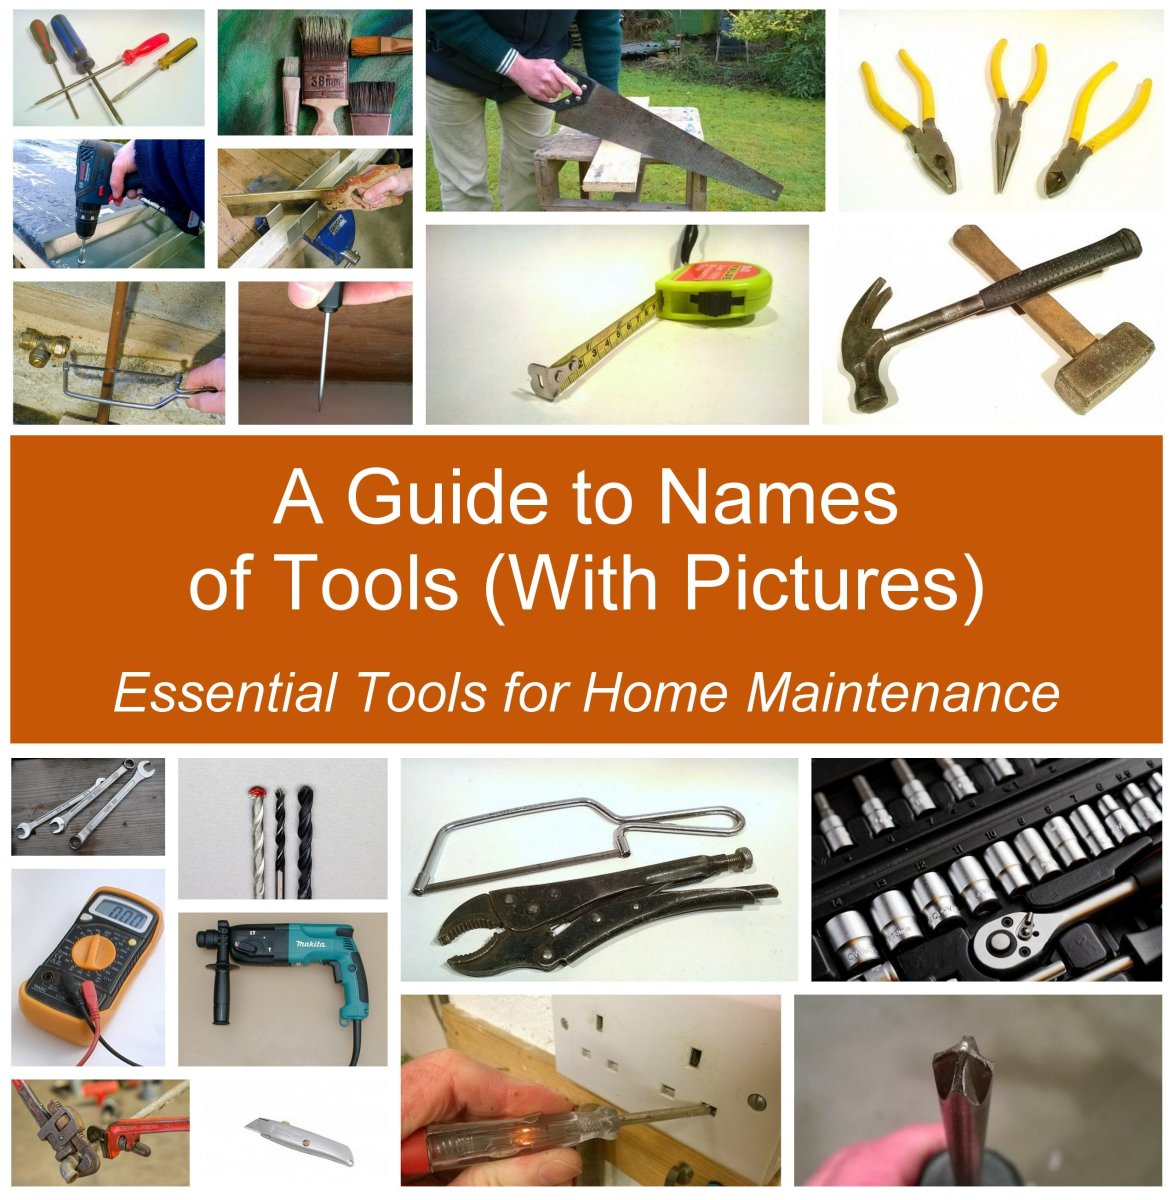 Essential tools for home maintenance.